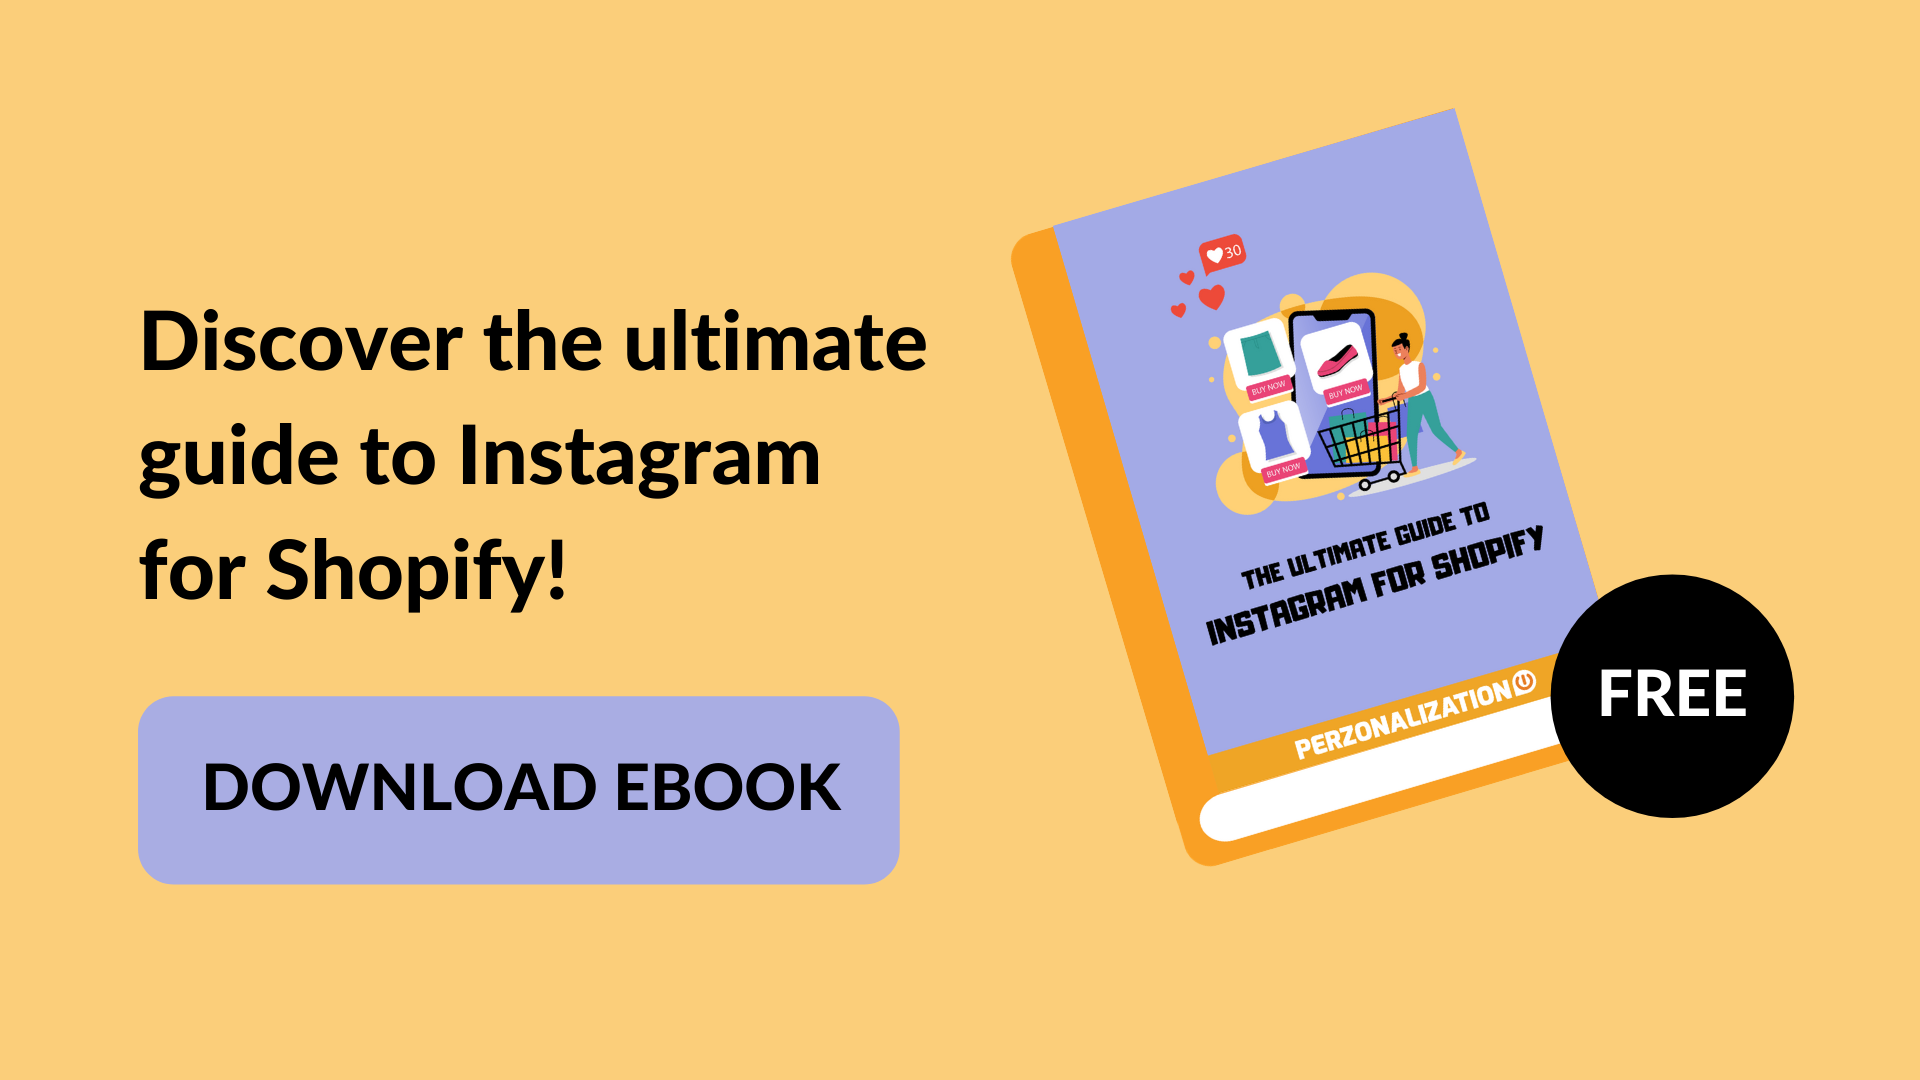 Instagram for Shopify will eventually benefit your eCommerce store as it enables you to sell more effectively on both the channels. Discover more in this free eBook!